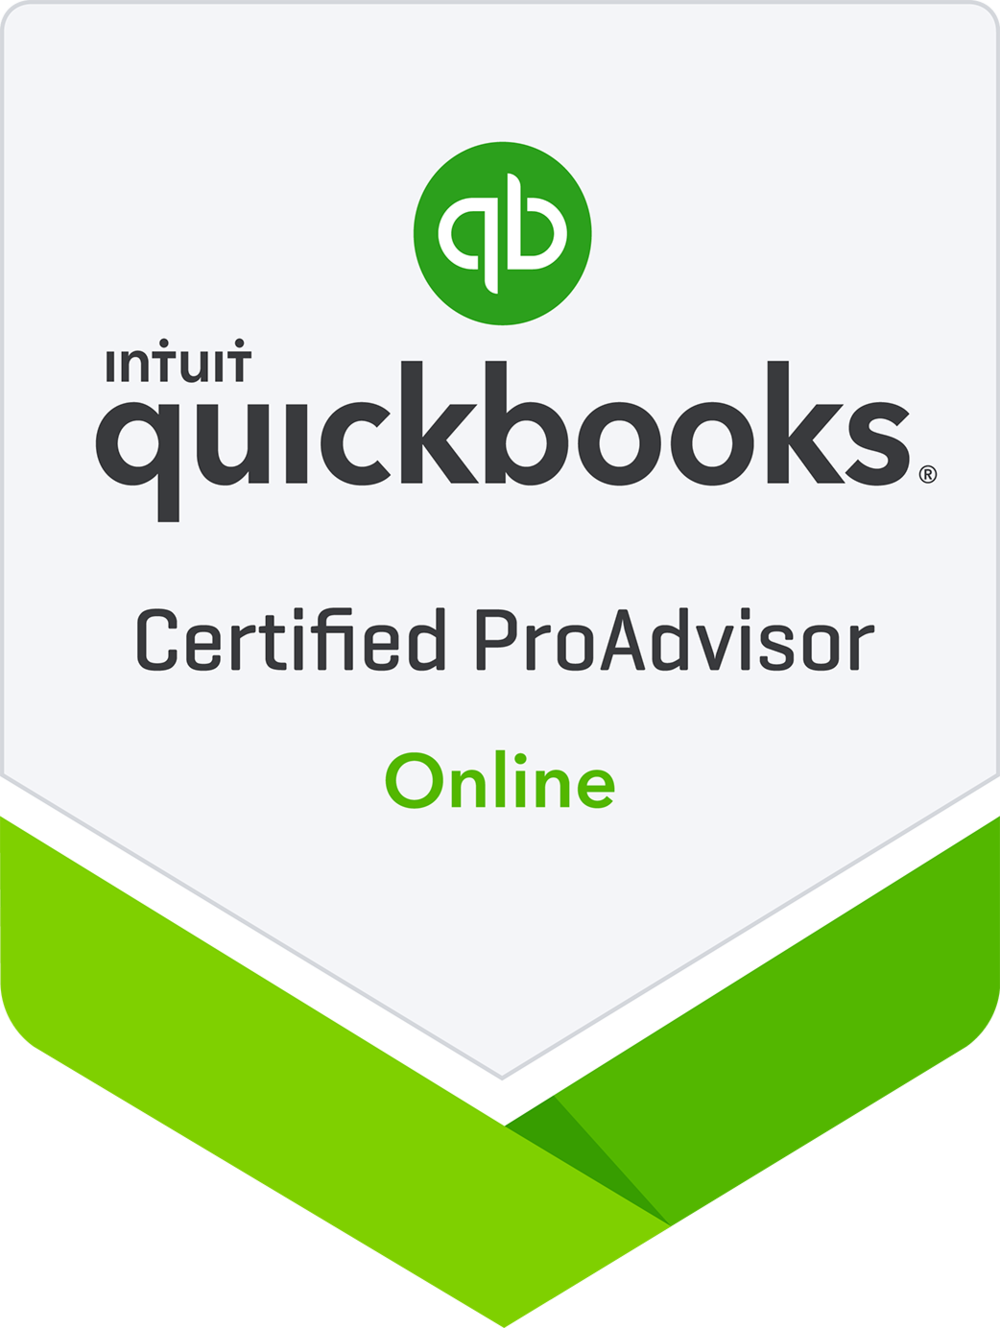 Twin Cities QuickBooks® Certified ProAdvisor Online